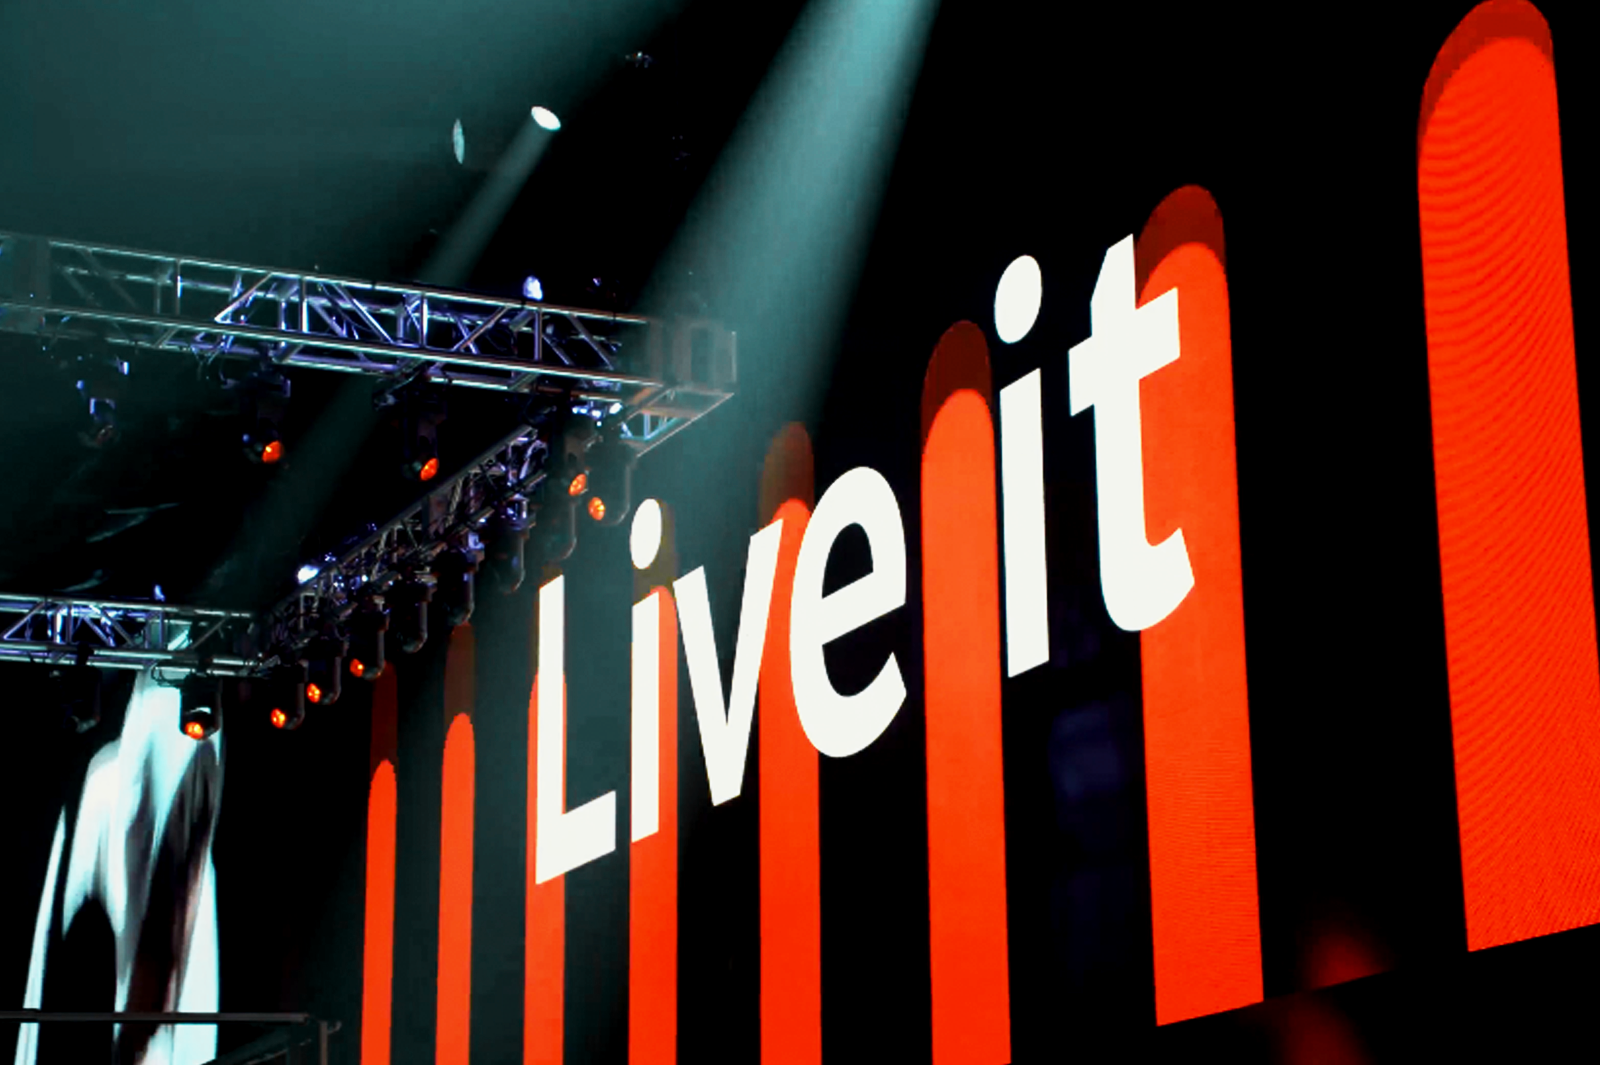 Angled photo of lighting design and LED screen at conference with red and black design and the words Live it on screen.